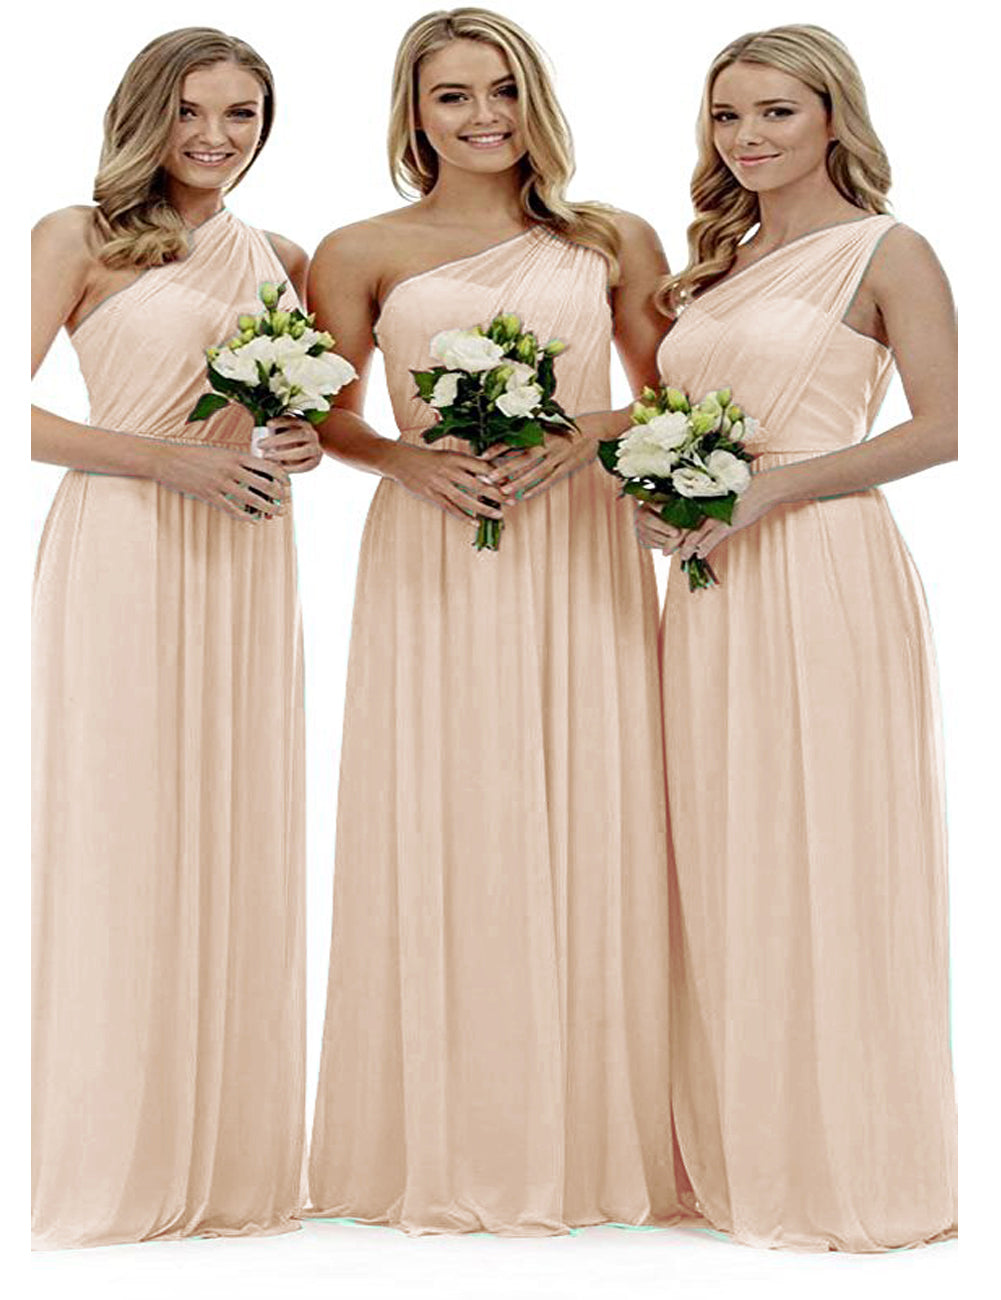 Zoe pastel peach blush grecian one shouldered long bridesmaid wedding bridal evening prom dress uk Loulous Bridal Boutique